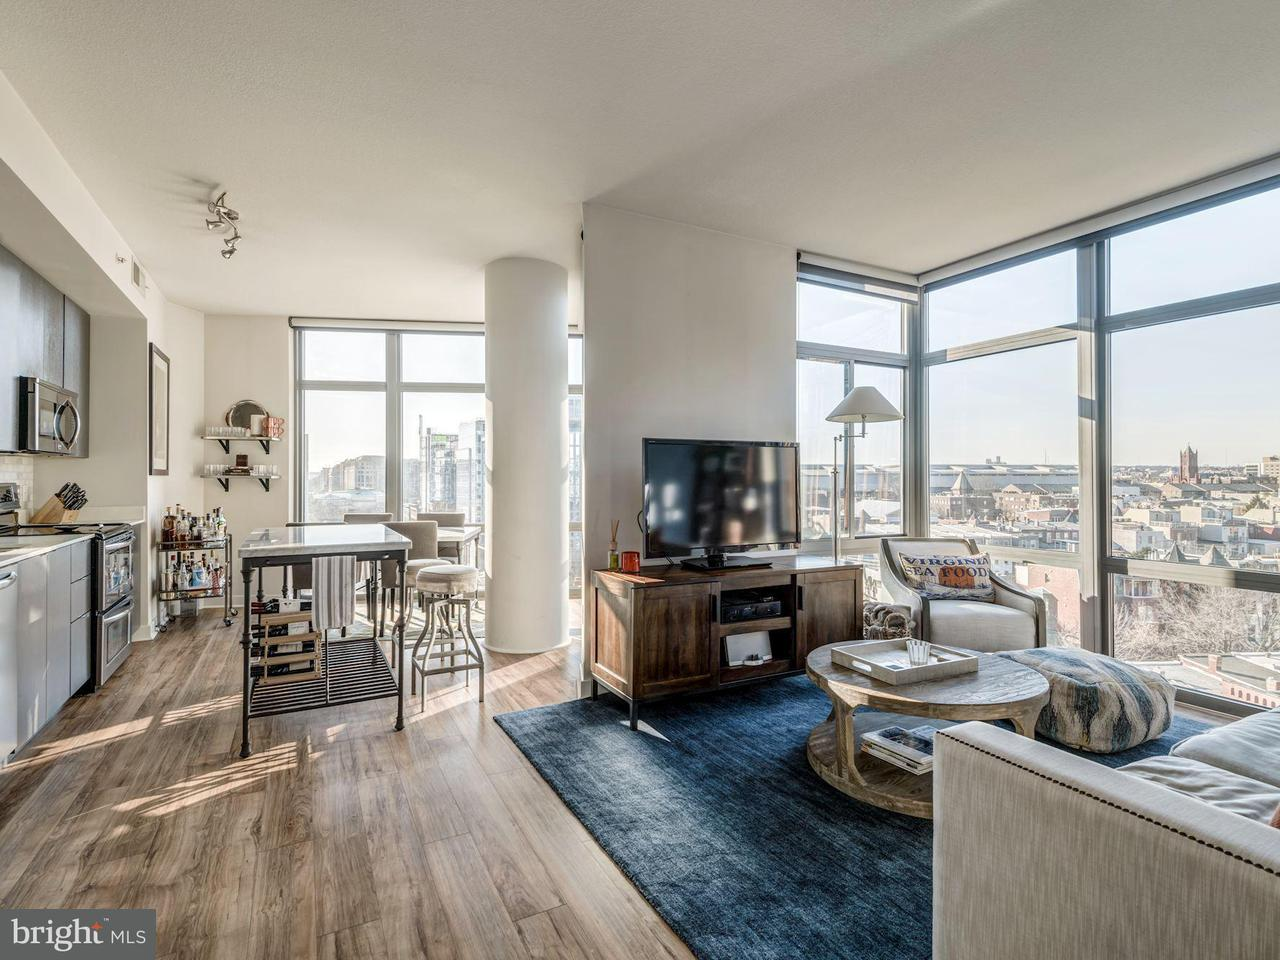 Condominium for Sale at 460 New York Ave NW #803 Washington, District Of Columbia 20001 United States